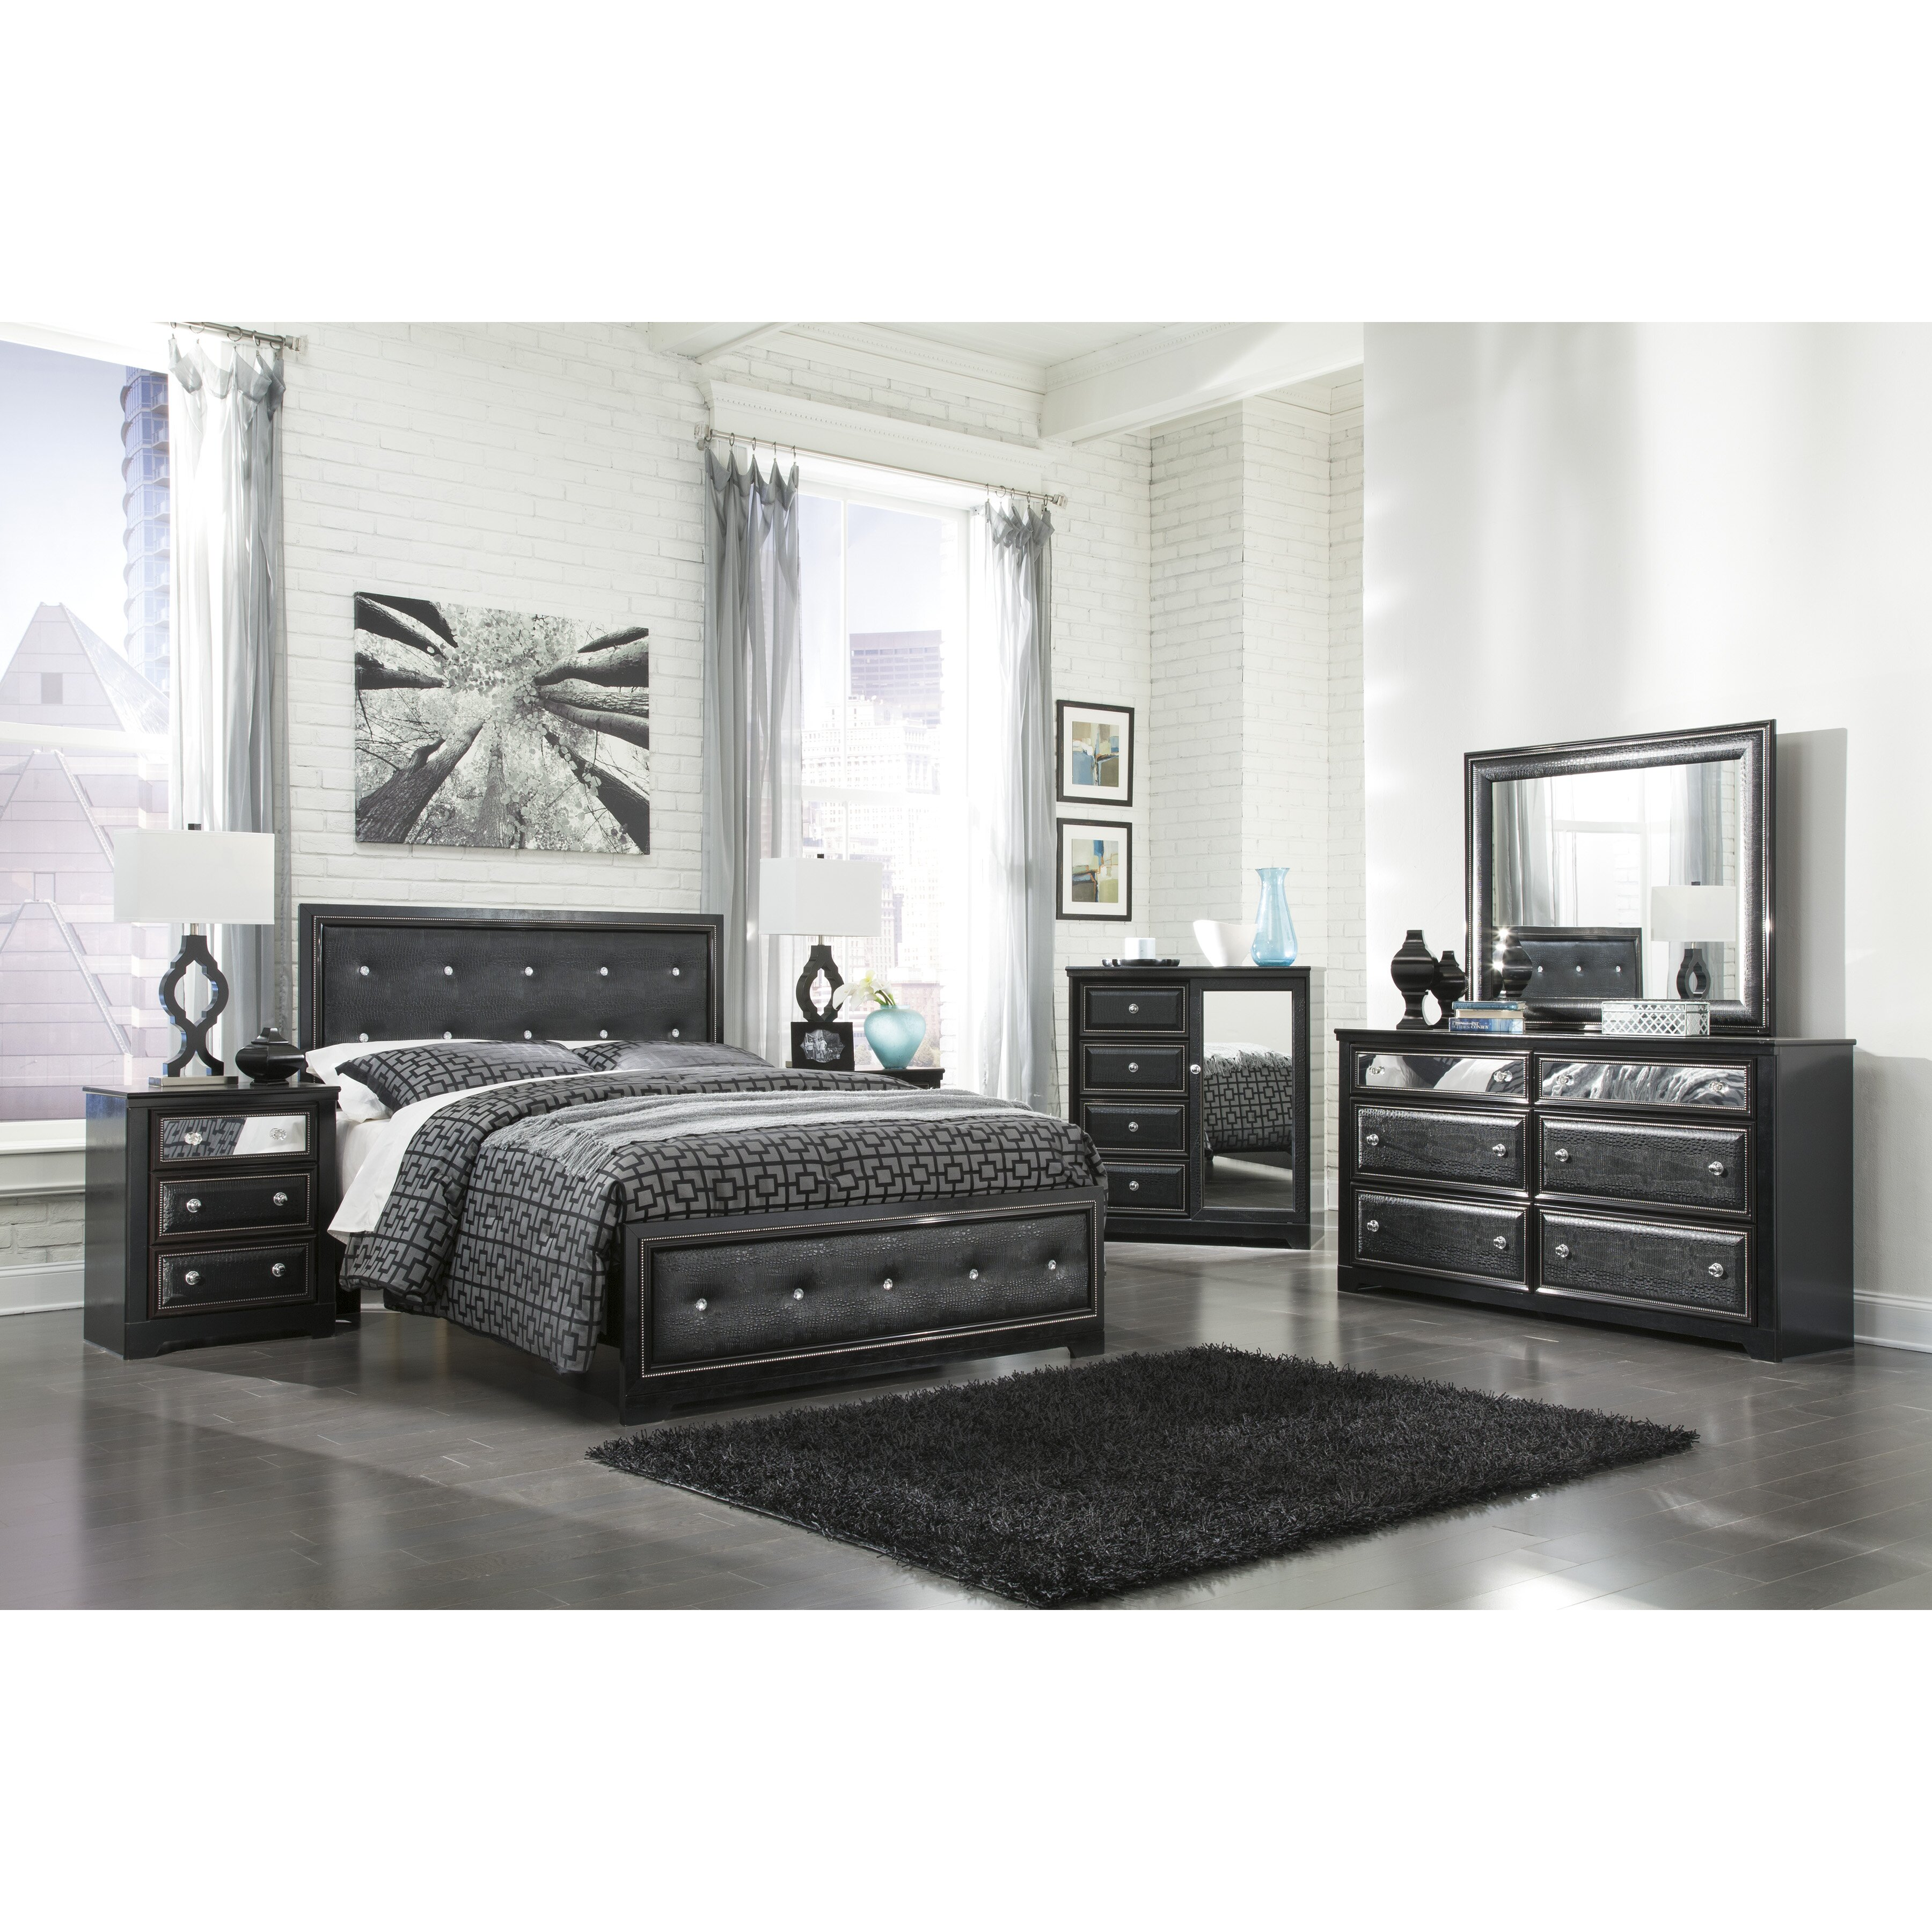 Signature design by ashley alamadyre panel customizable - Ashley bedroom furniture reviews ...